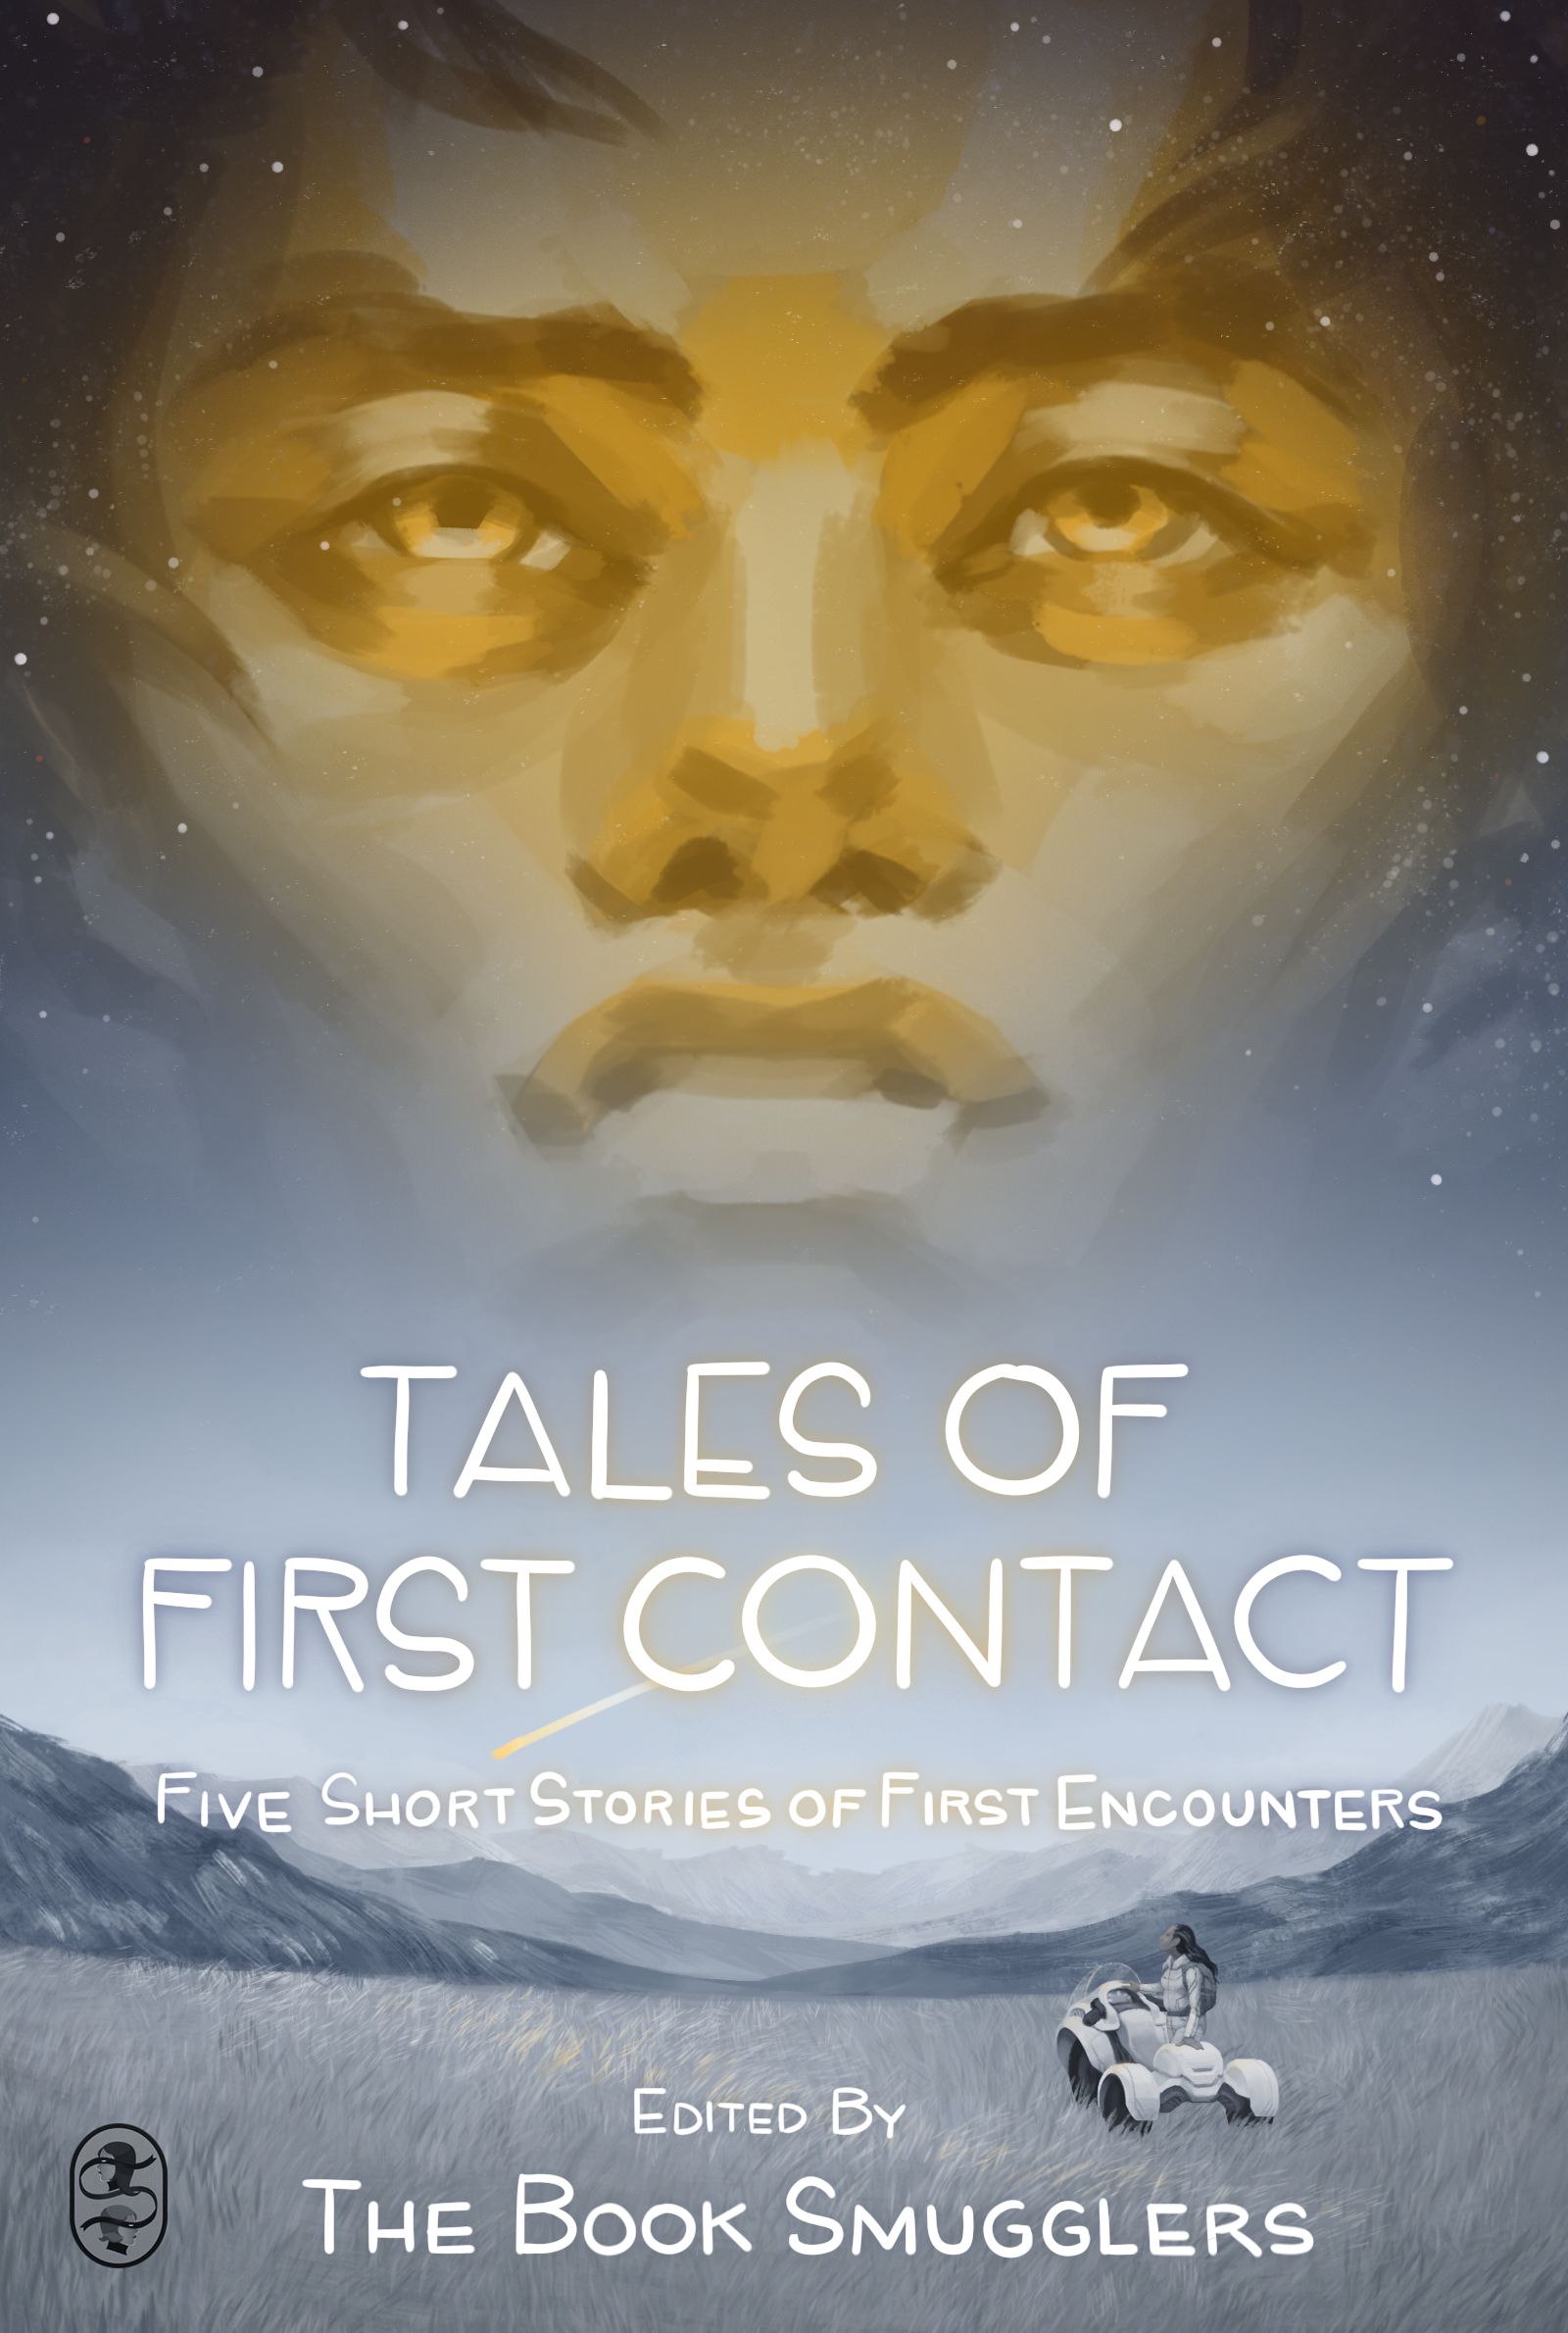 Tales of First Contact